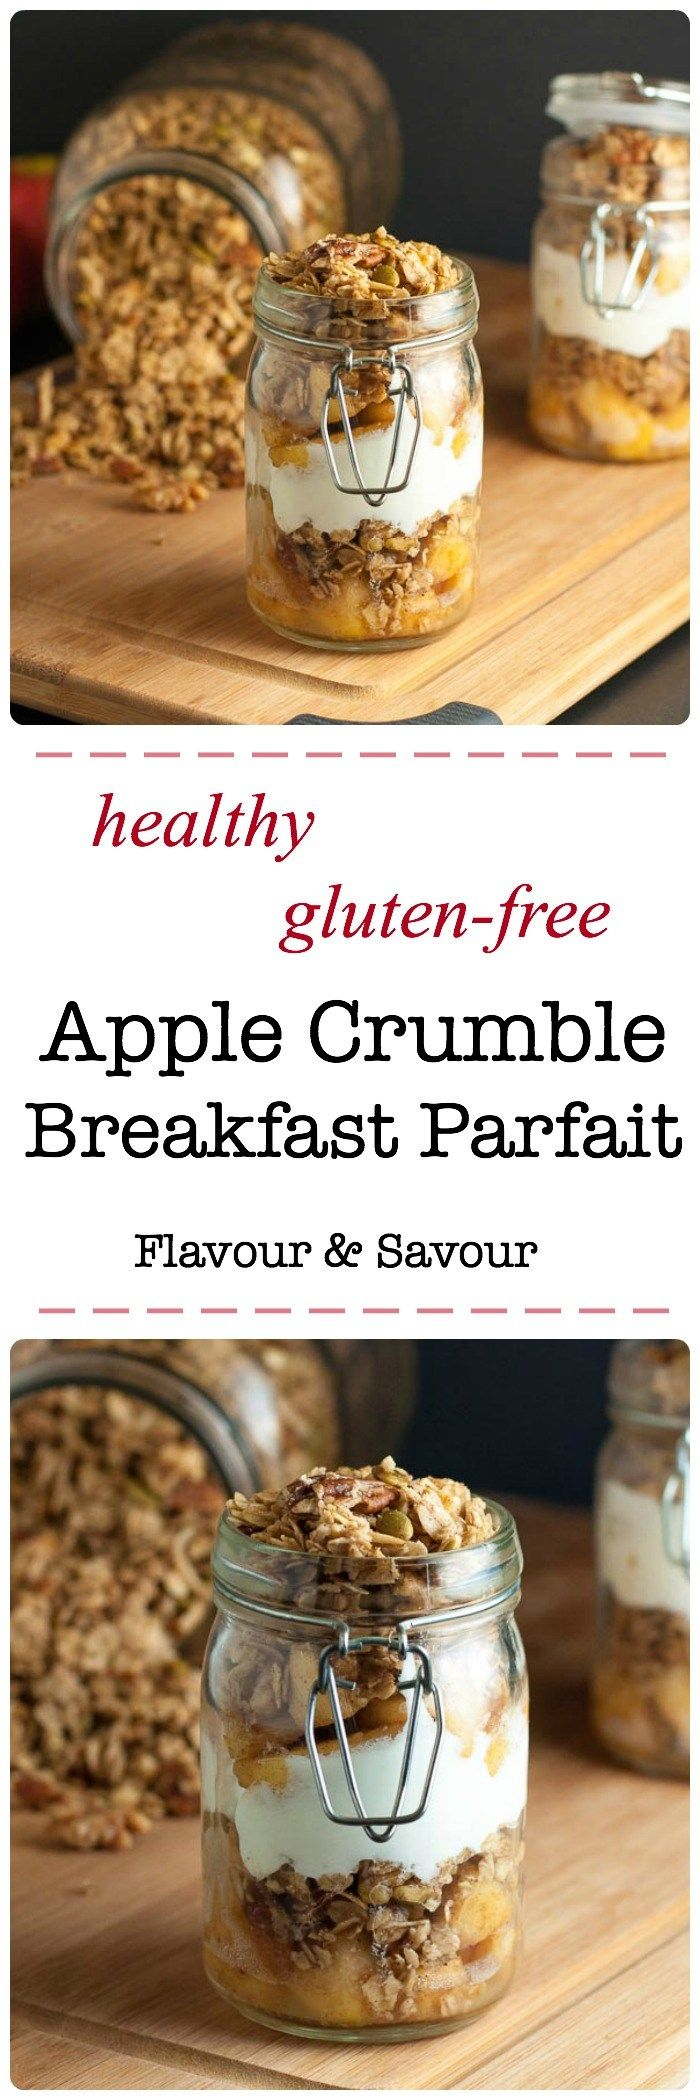 best breakfast images on pinterest clean eating meals cooking